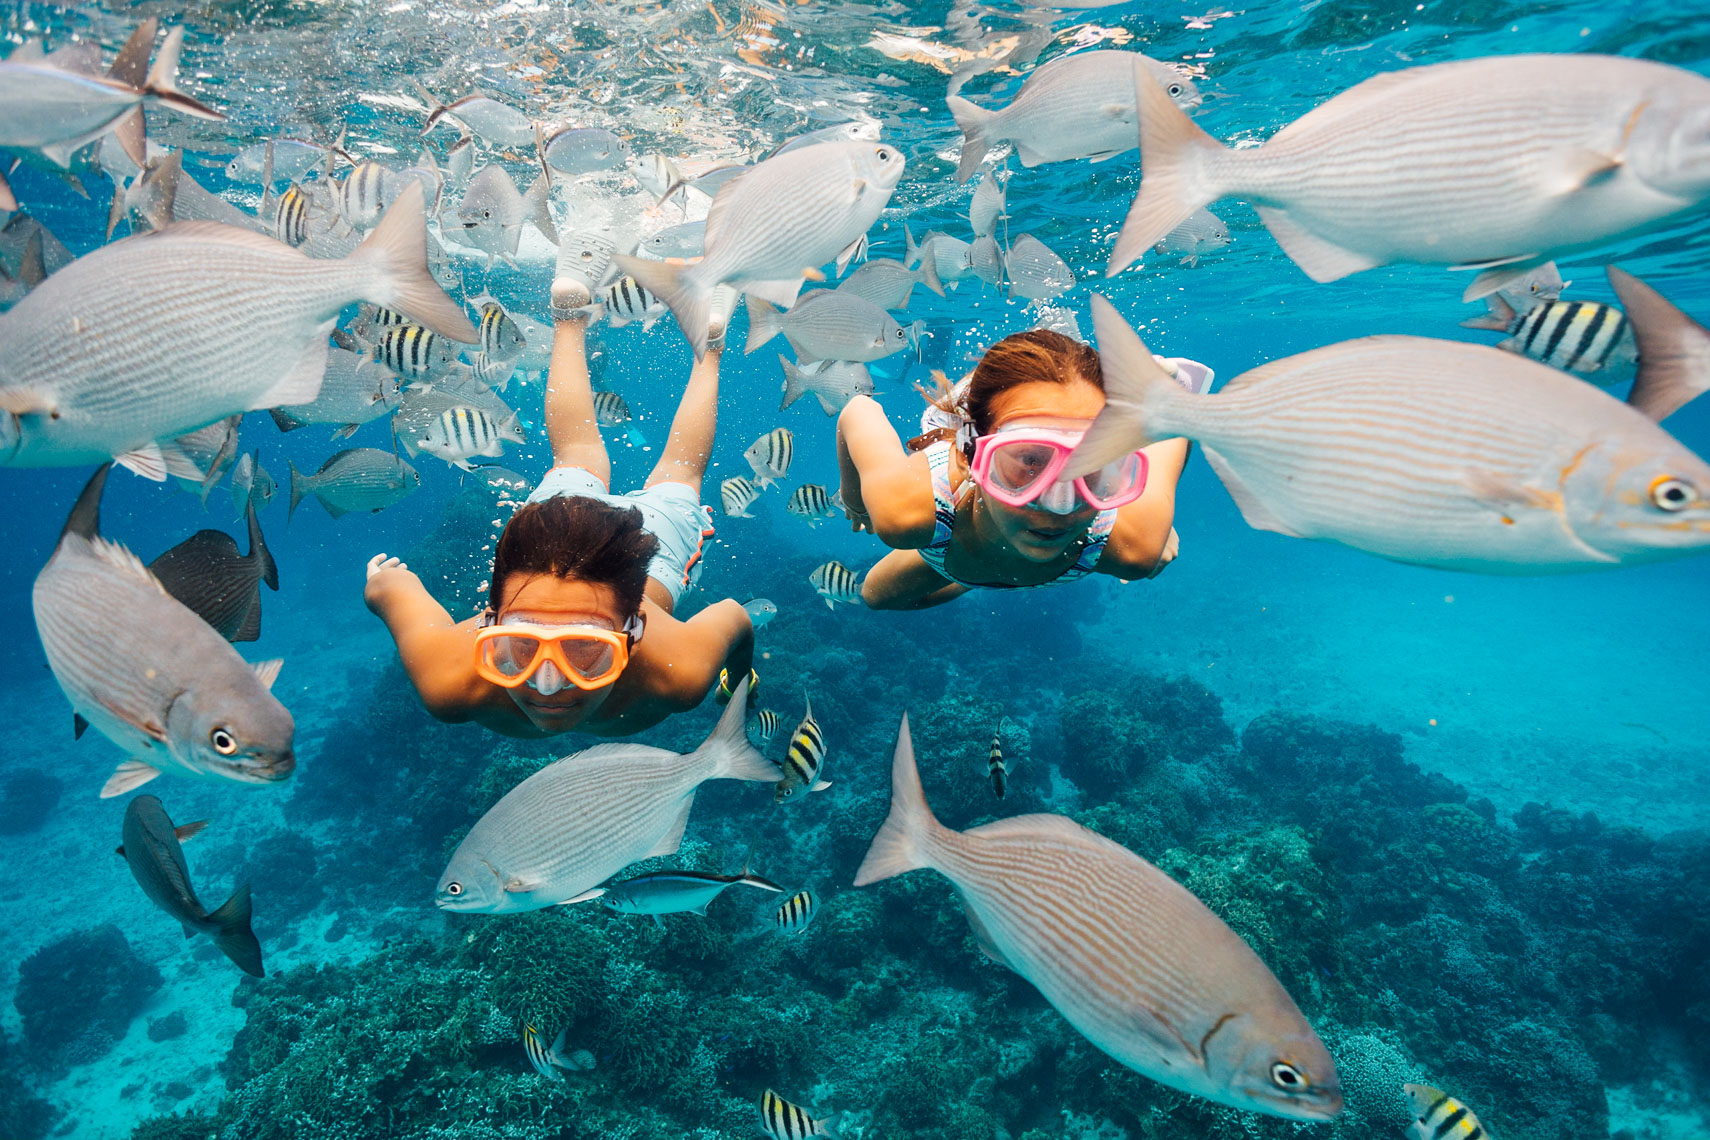 RCI_Cozumel_Coulmbia_Reef_Snorkel_Family_02_05003Kids